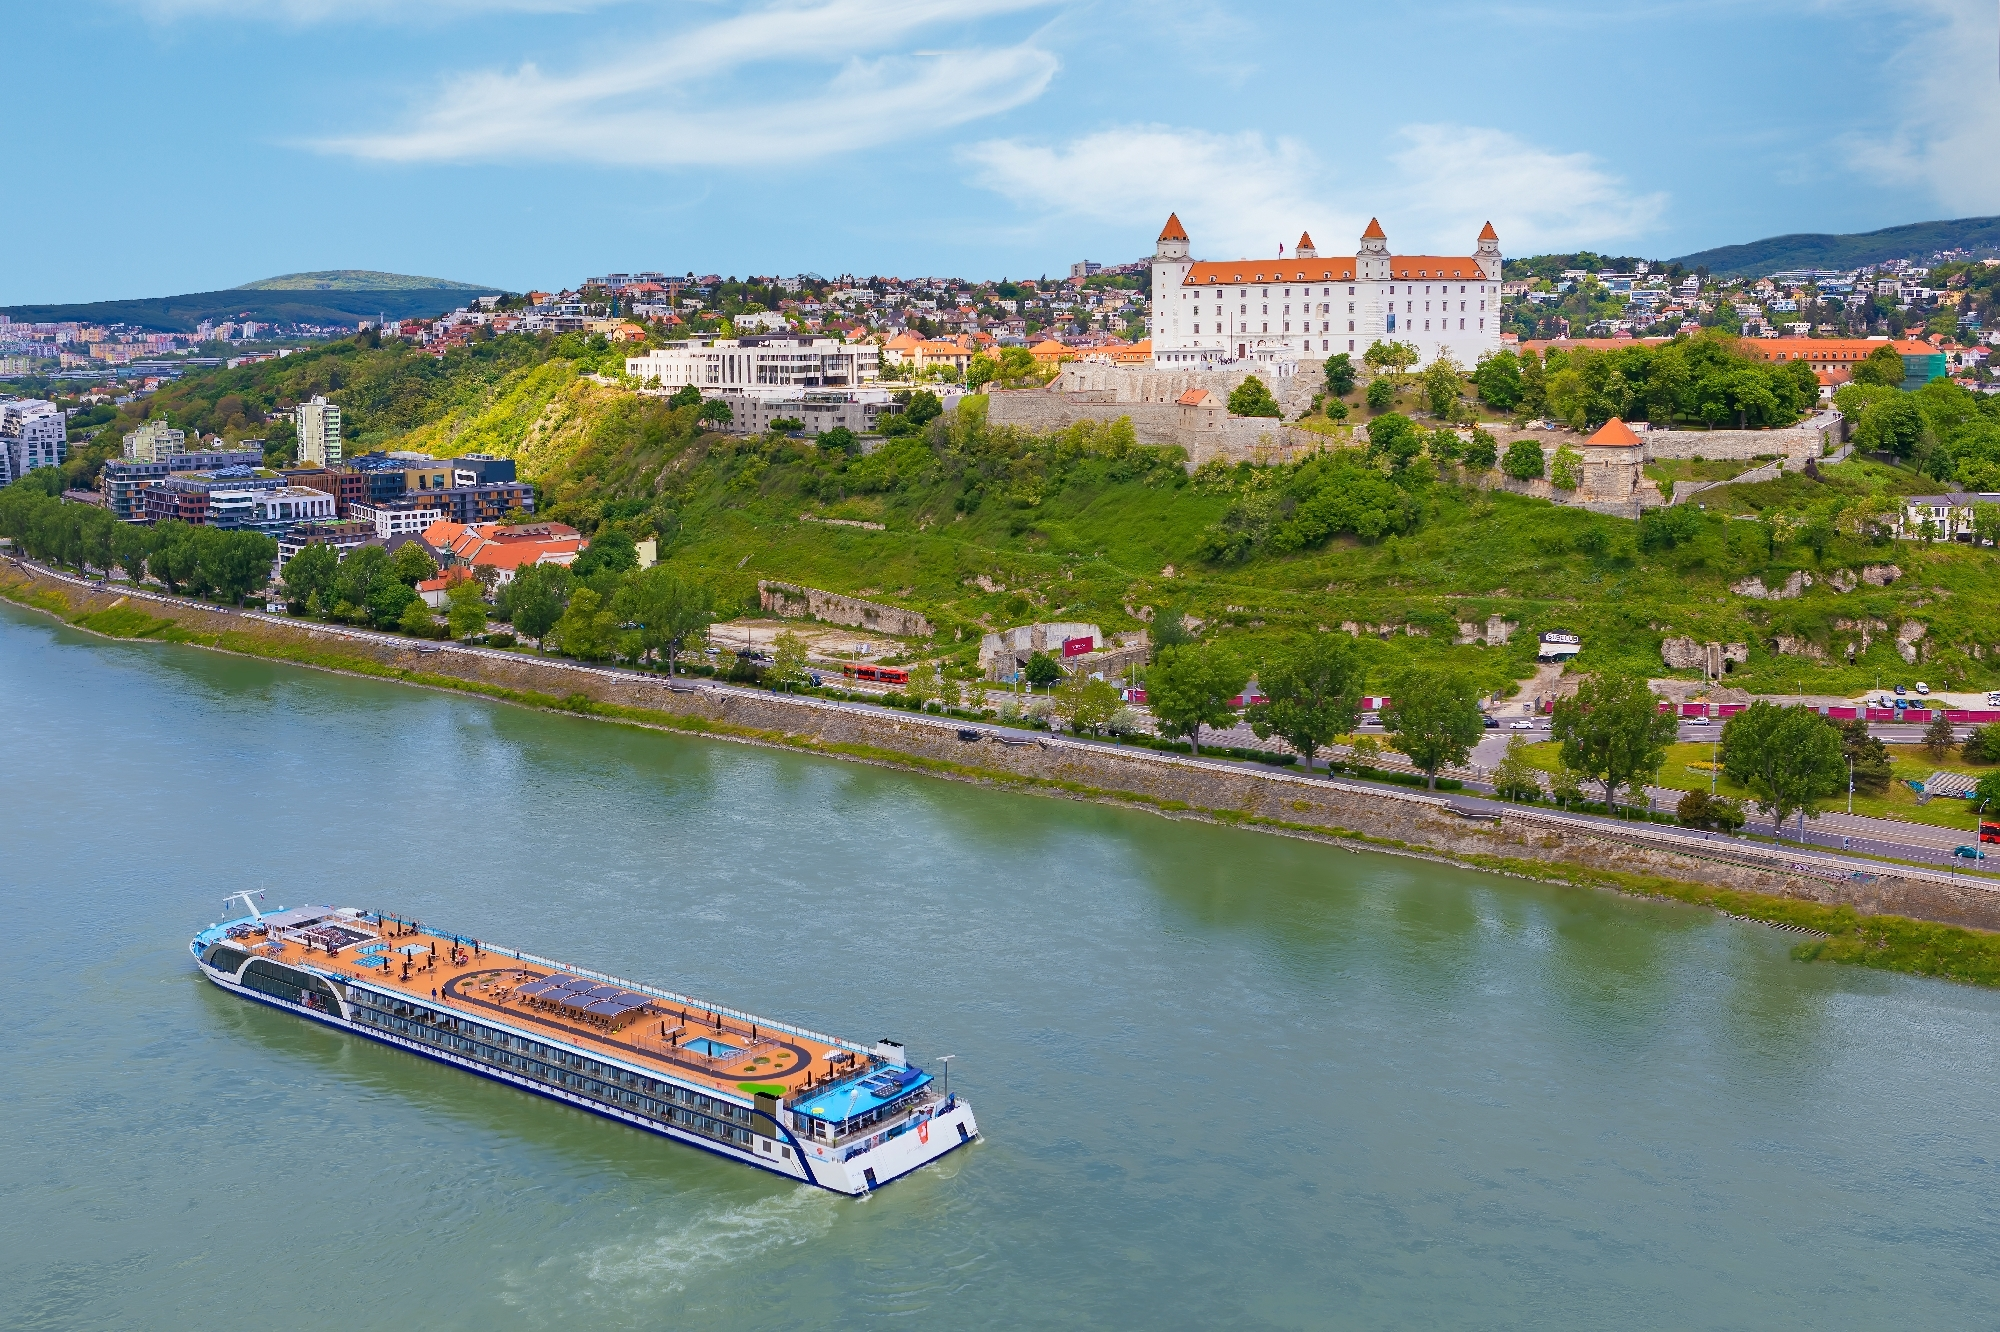 AmaMagna on the Danube in Bratislava